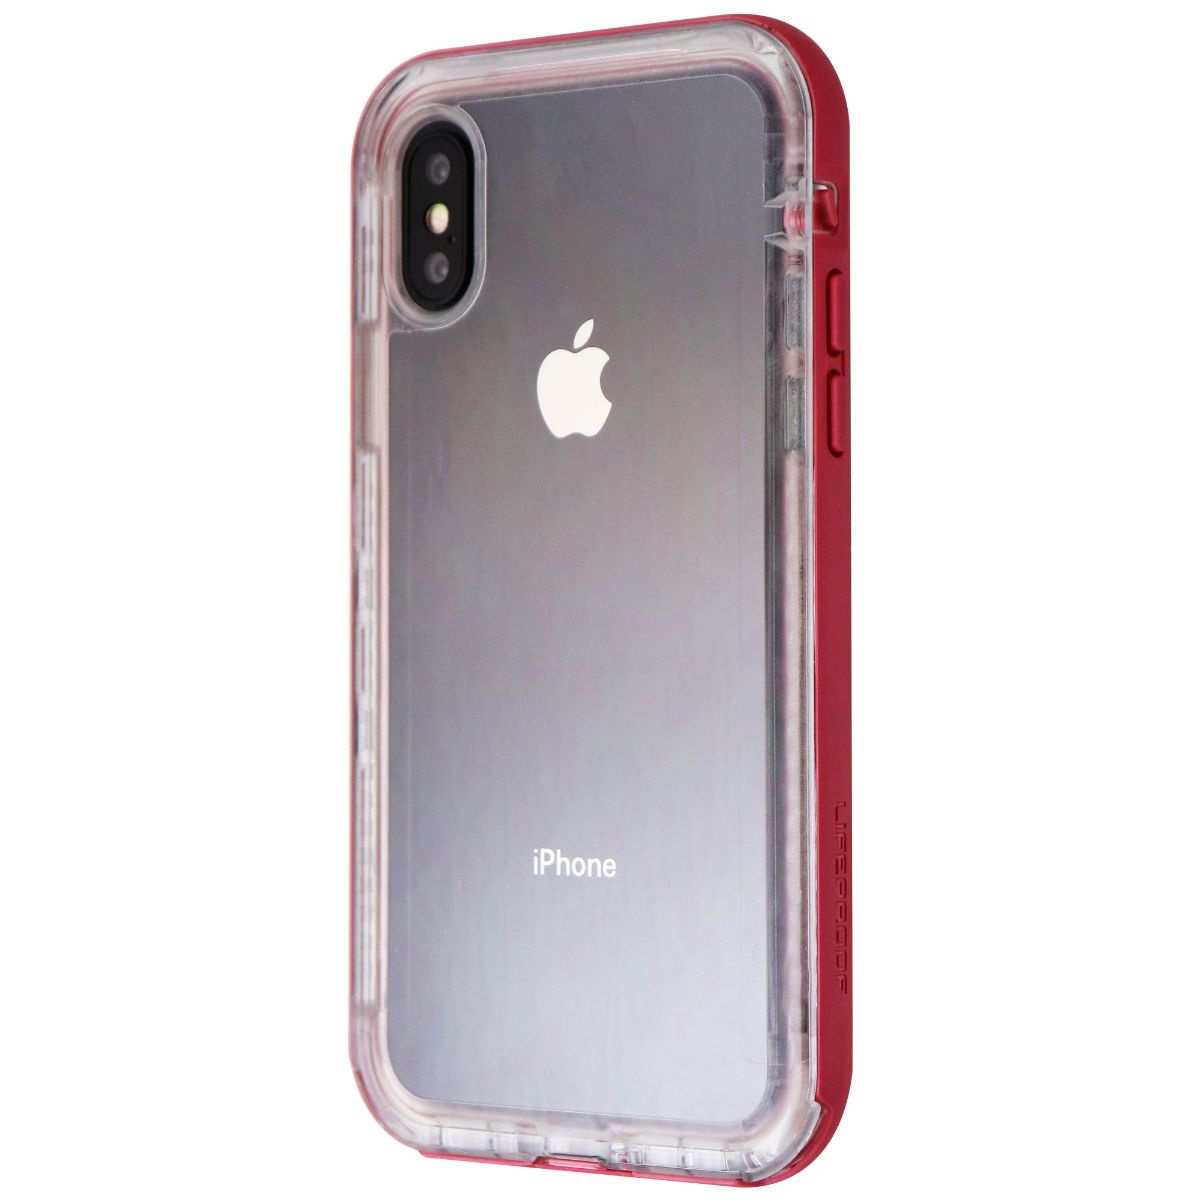 Lifeproof NEXT Series Case for Apple iPhone X and XS - Cactus Rose (Clear/Pink)